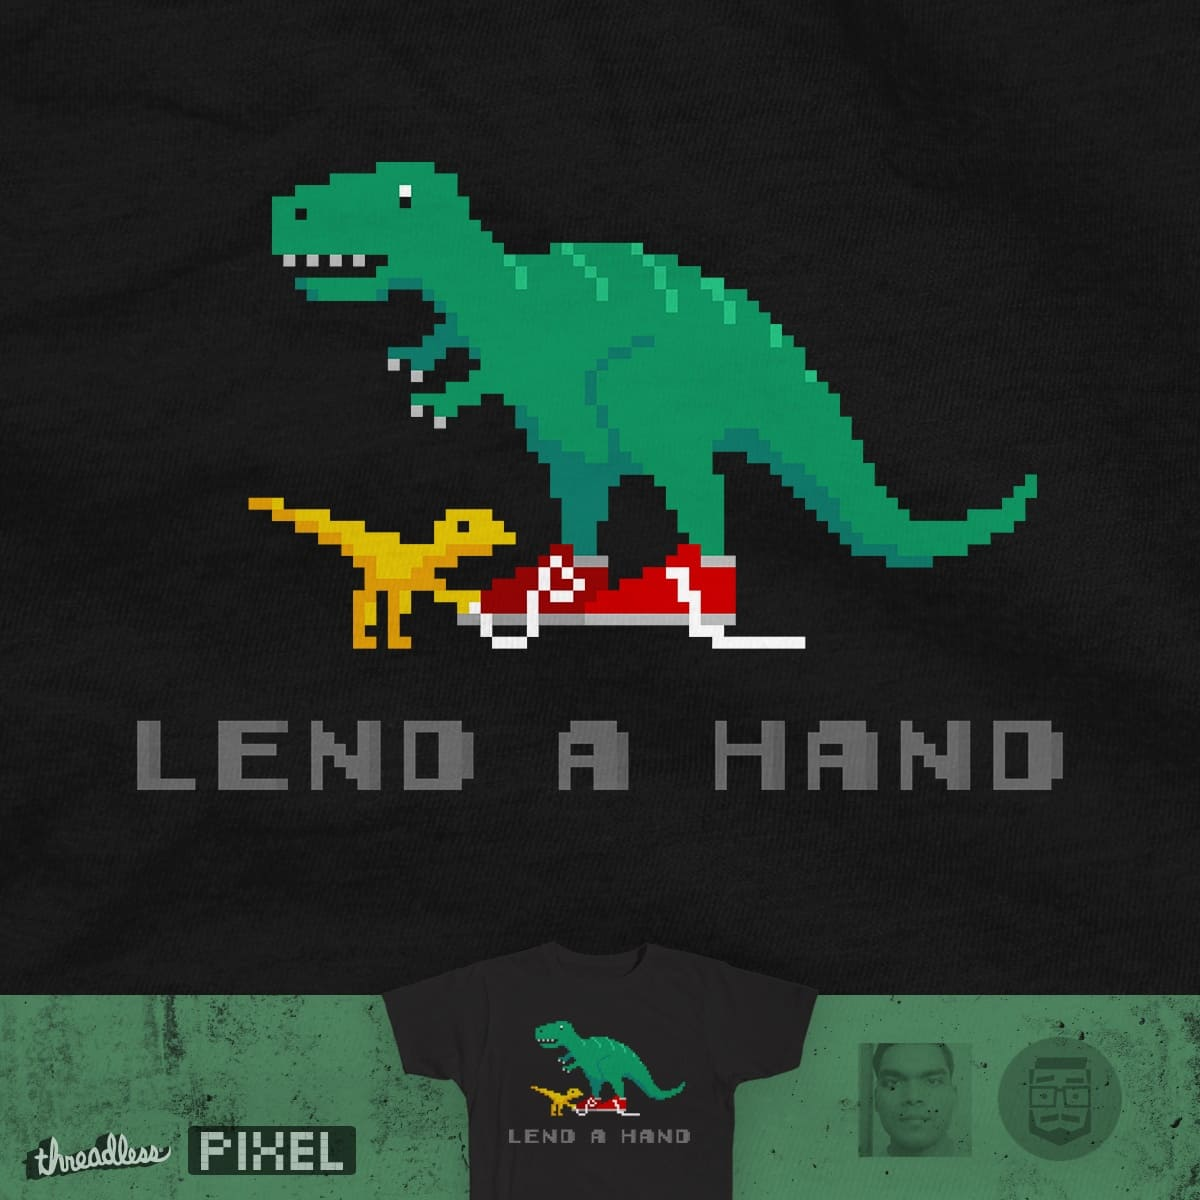 Lend A Hand by csweiler and Shadyjibes on Threadless